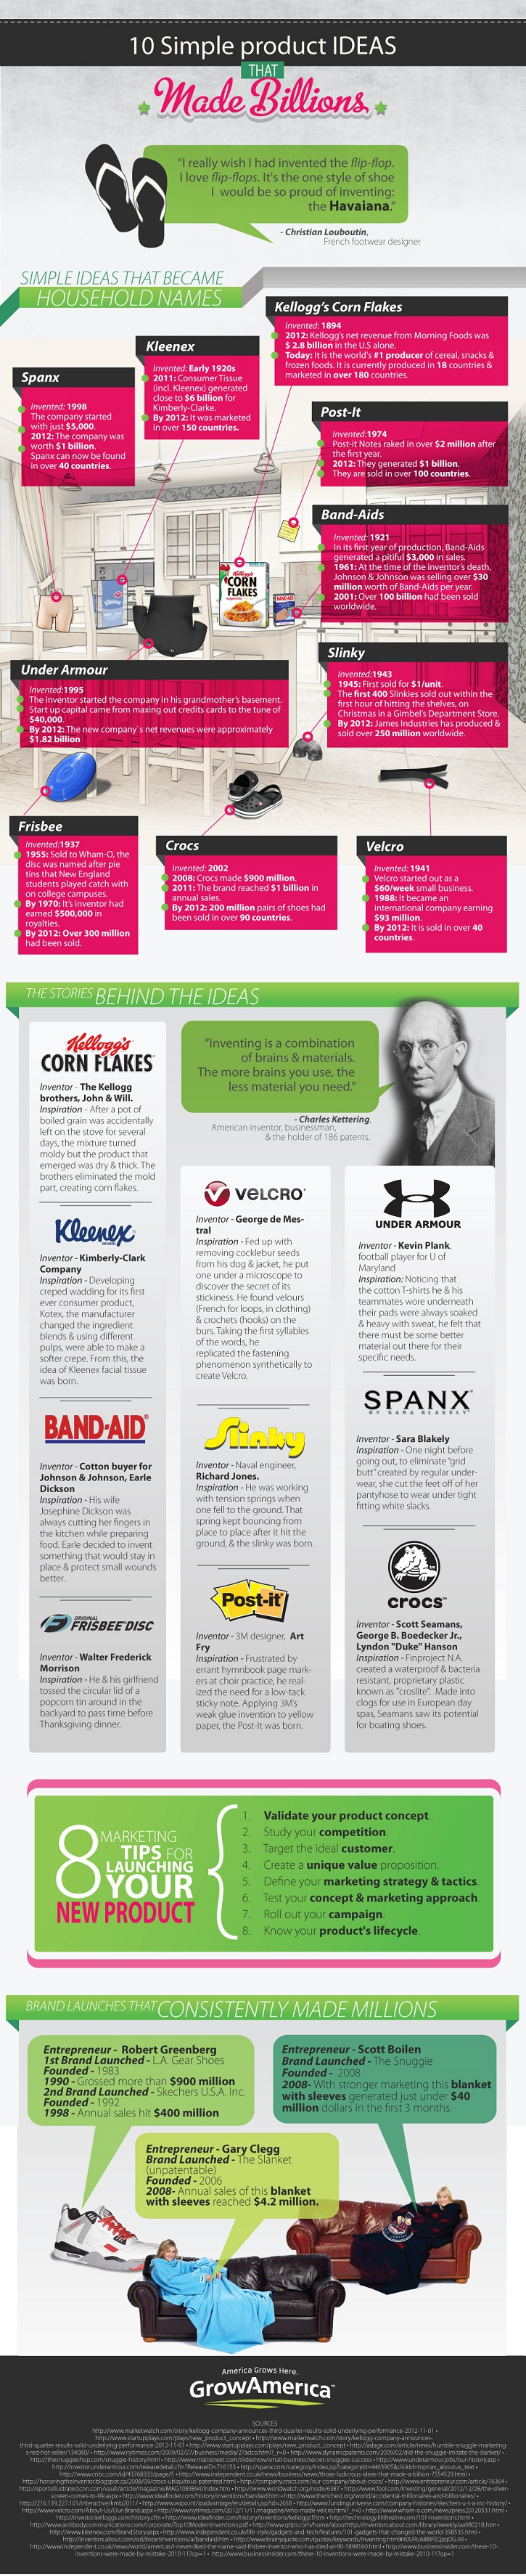 product ideas which made billions